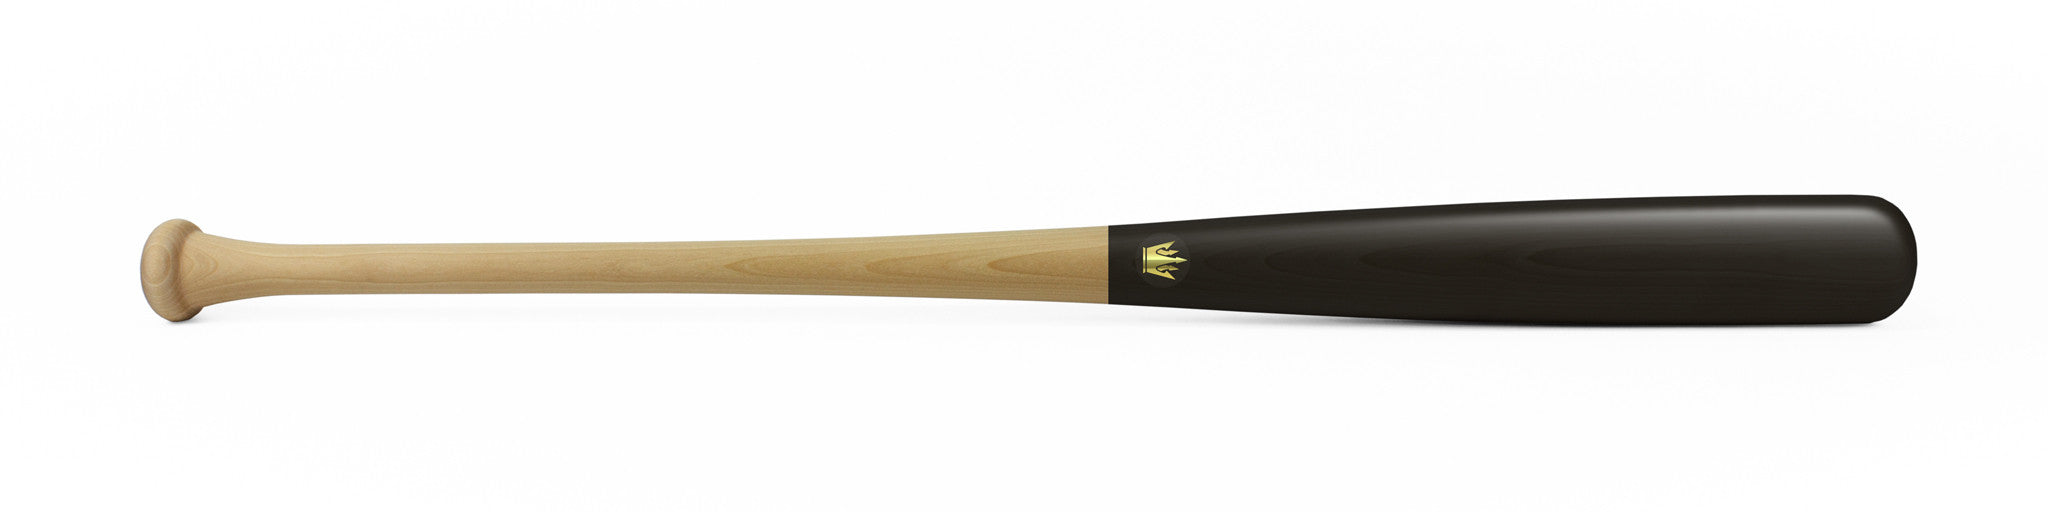 Wood bat - Birch model 110 Black Standard - 12